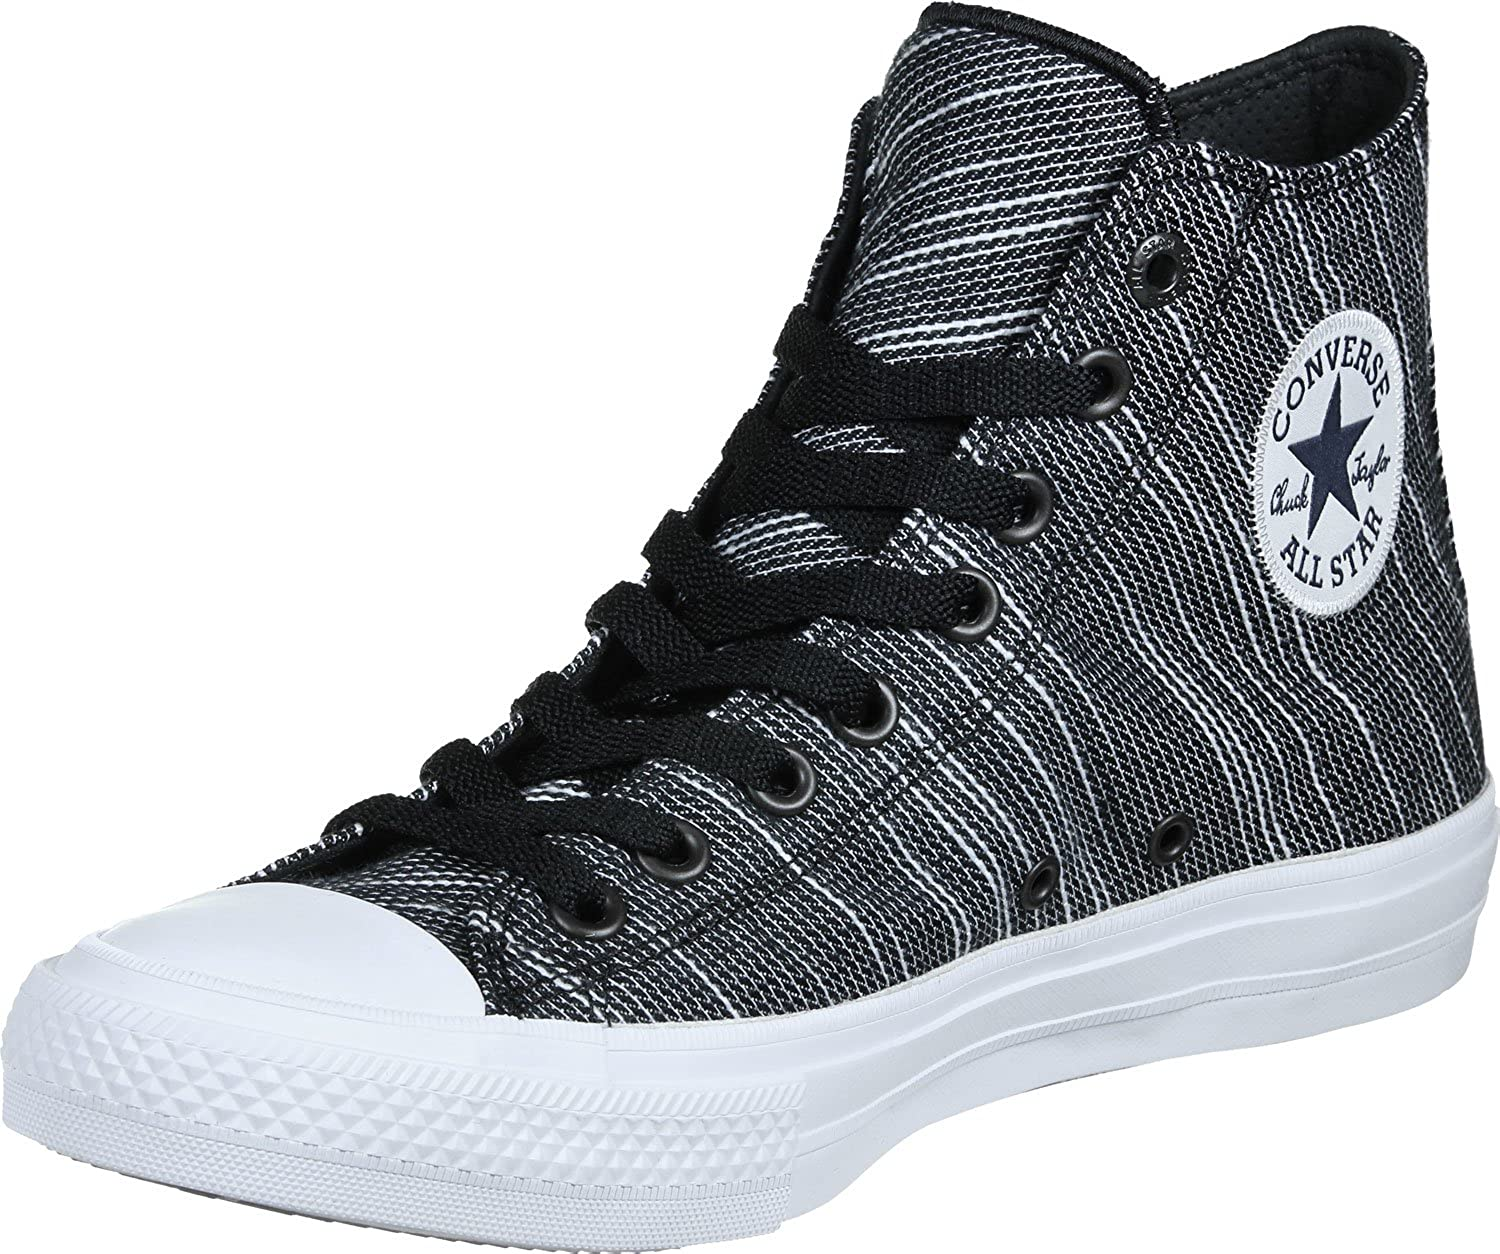 converse chuck taylor all star ii high